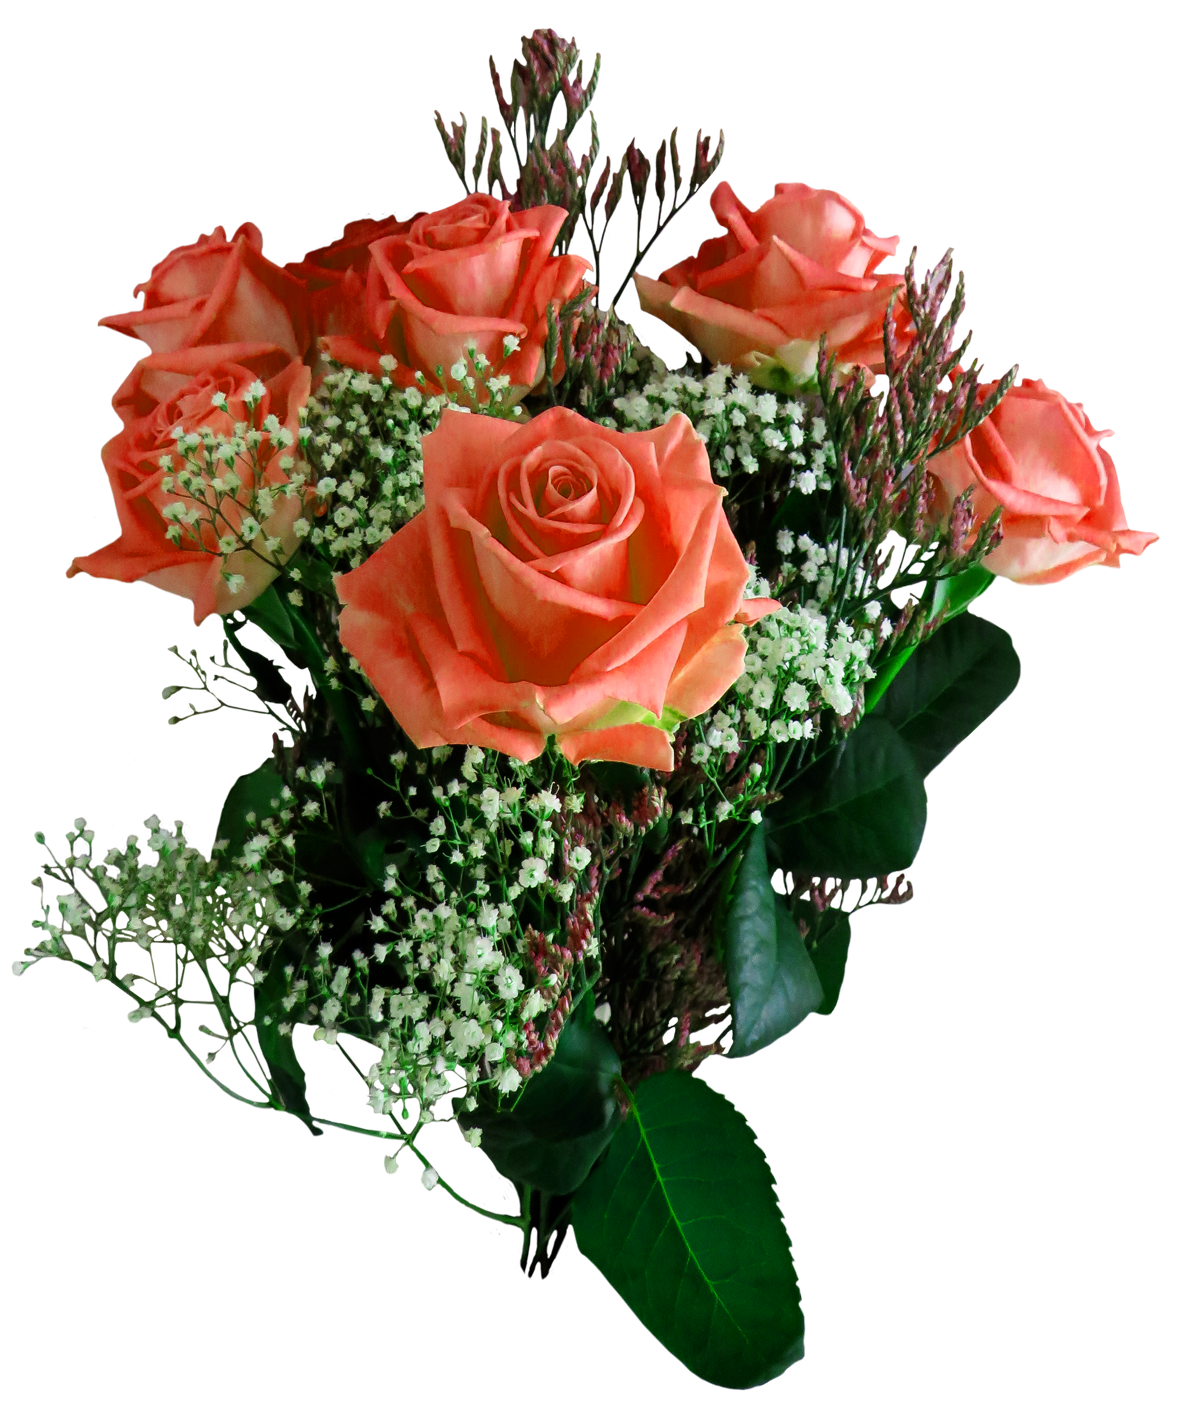 Transparent png bouquet of flowers. Images pngpix rose flower